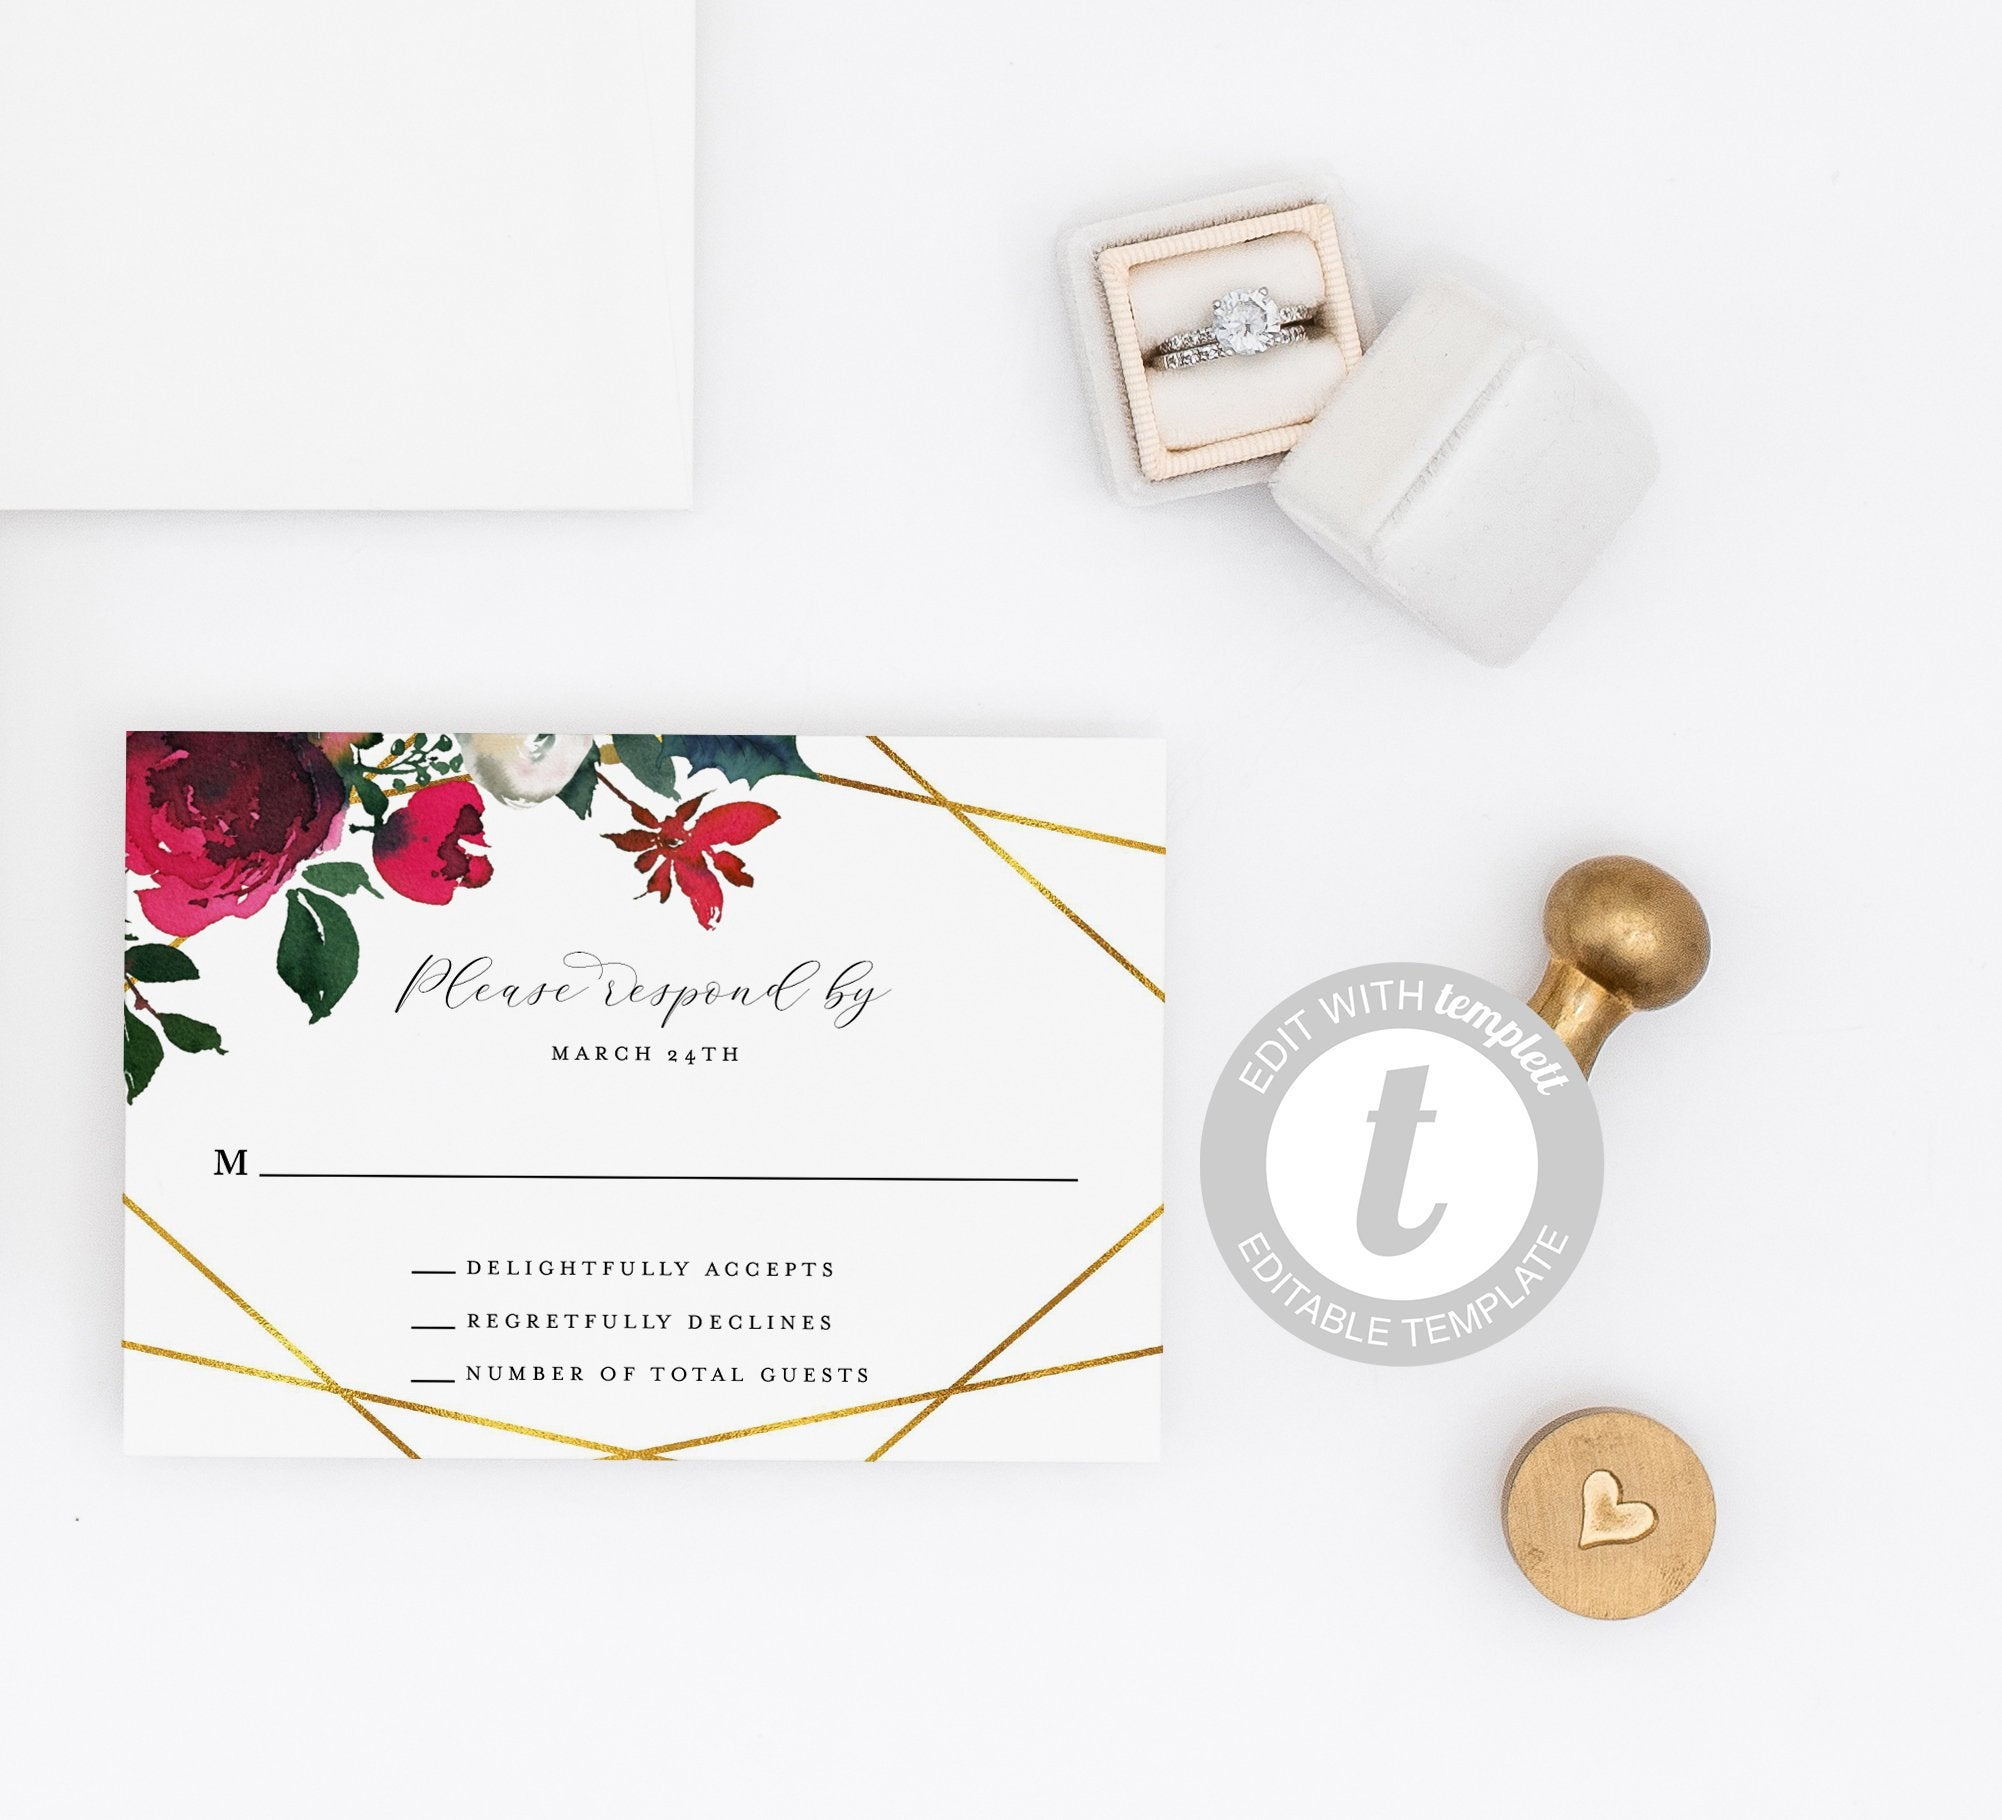 Burgundy Wedding RSVP Card Template, Christmas Winter RSVP cards, Response Card Geometric- Ada